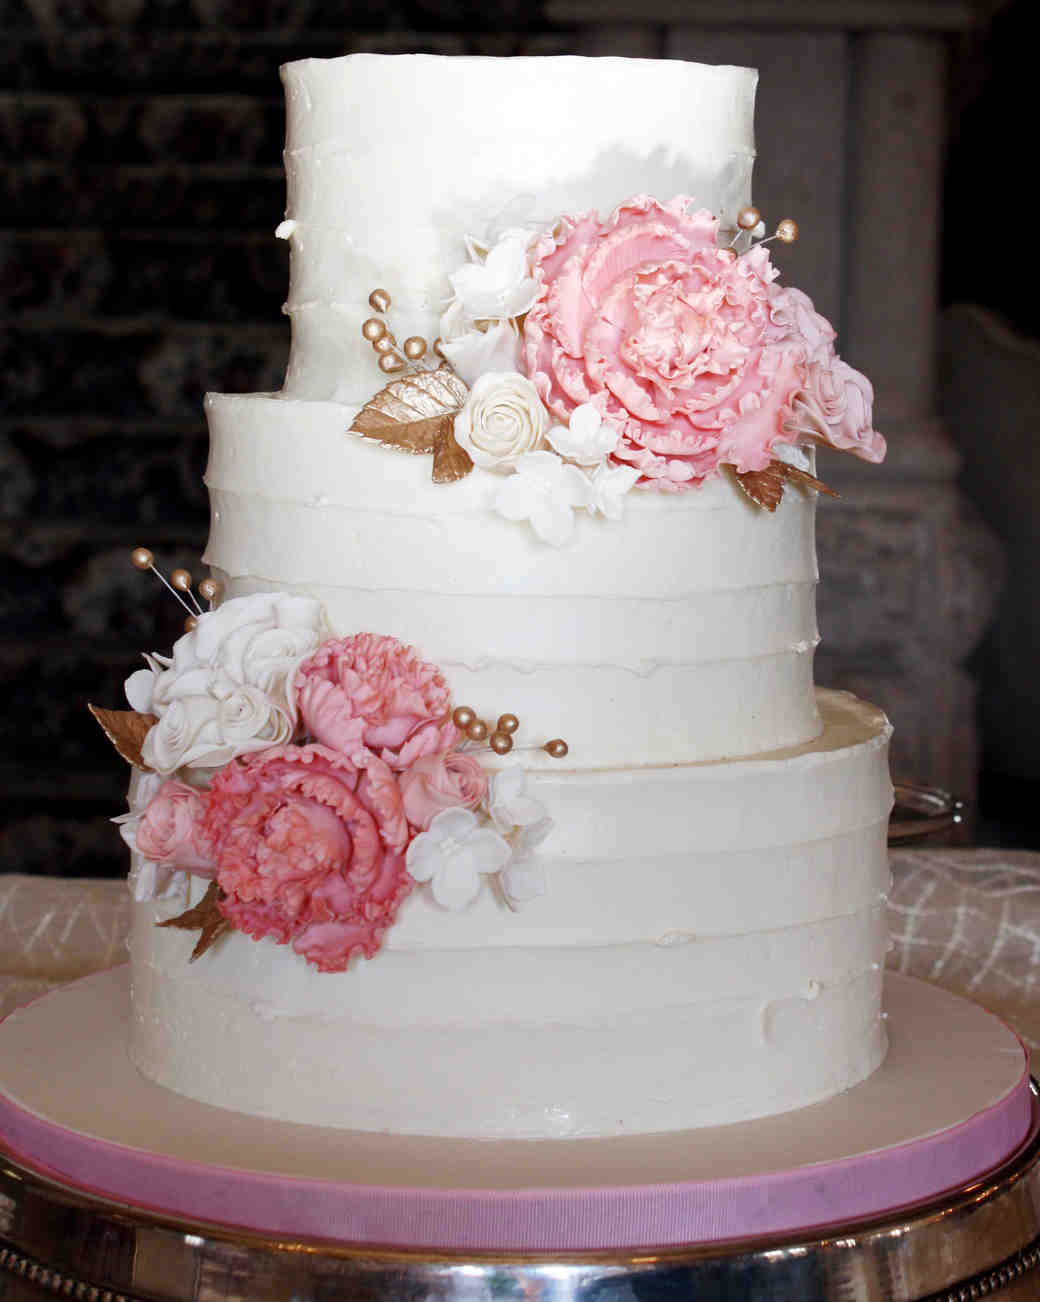 Wedding Cakes Buttercream Frosting  A Sweet Guide to Choosing a Frosting for Your Wedding Cake